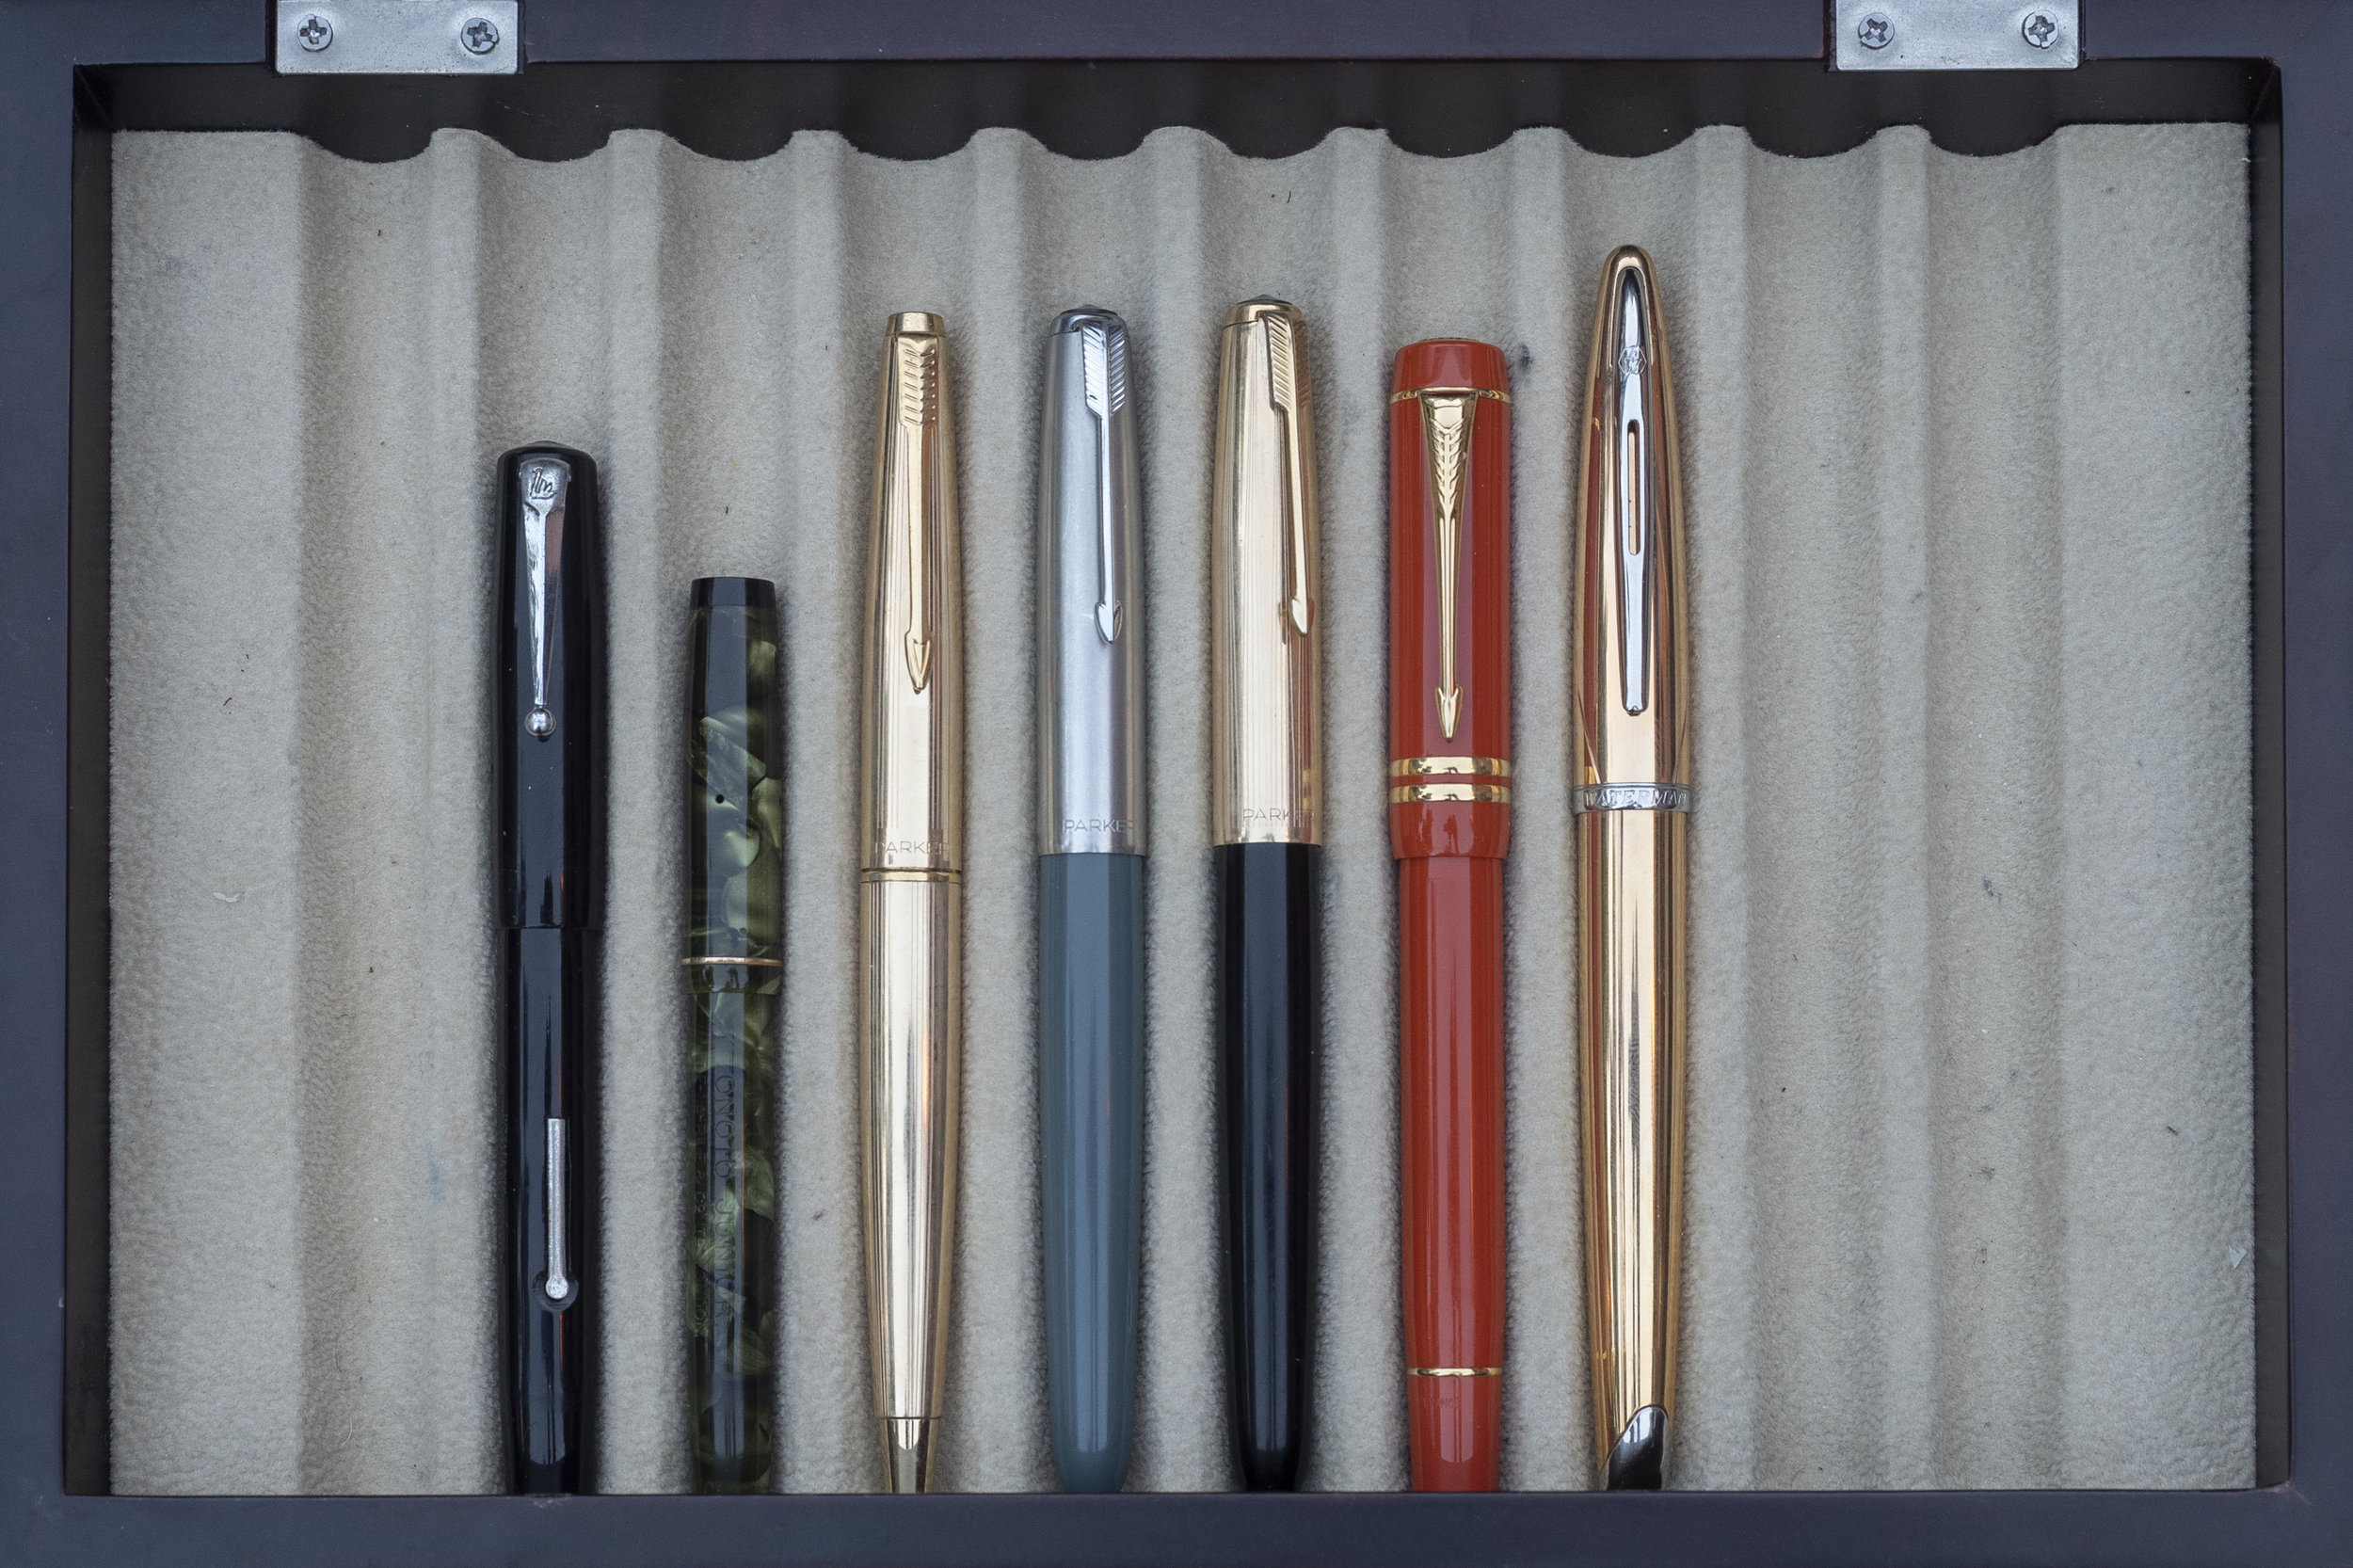 English and French Pens